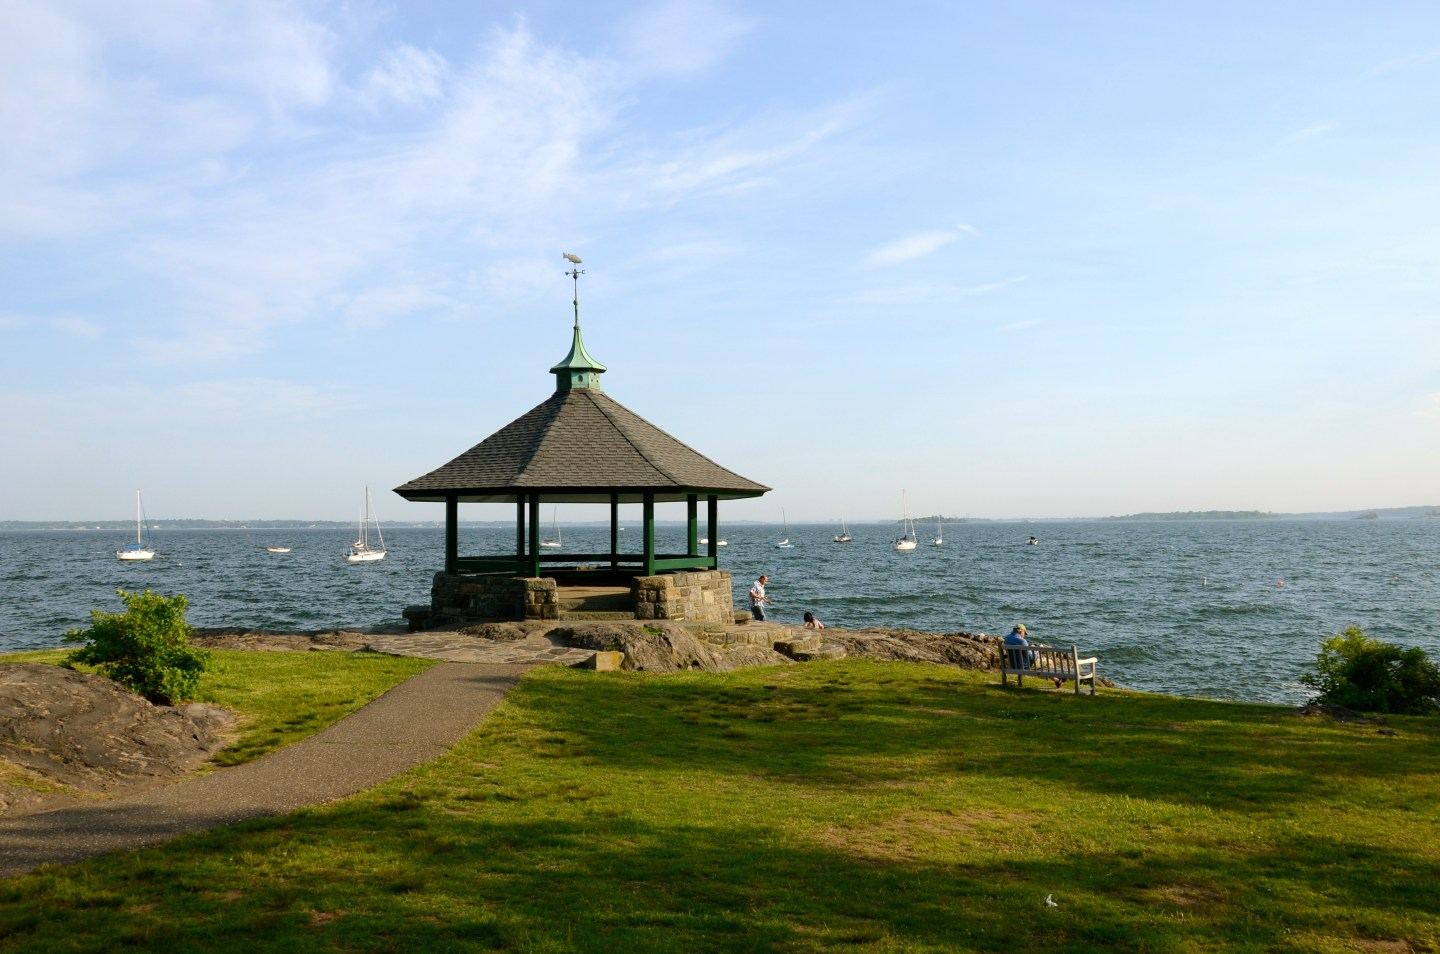 Larchmont Manor Park: When We Can't Get Away, Our Local Get-away